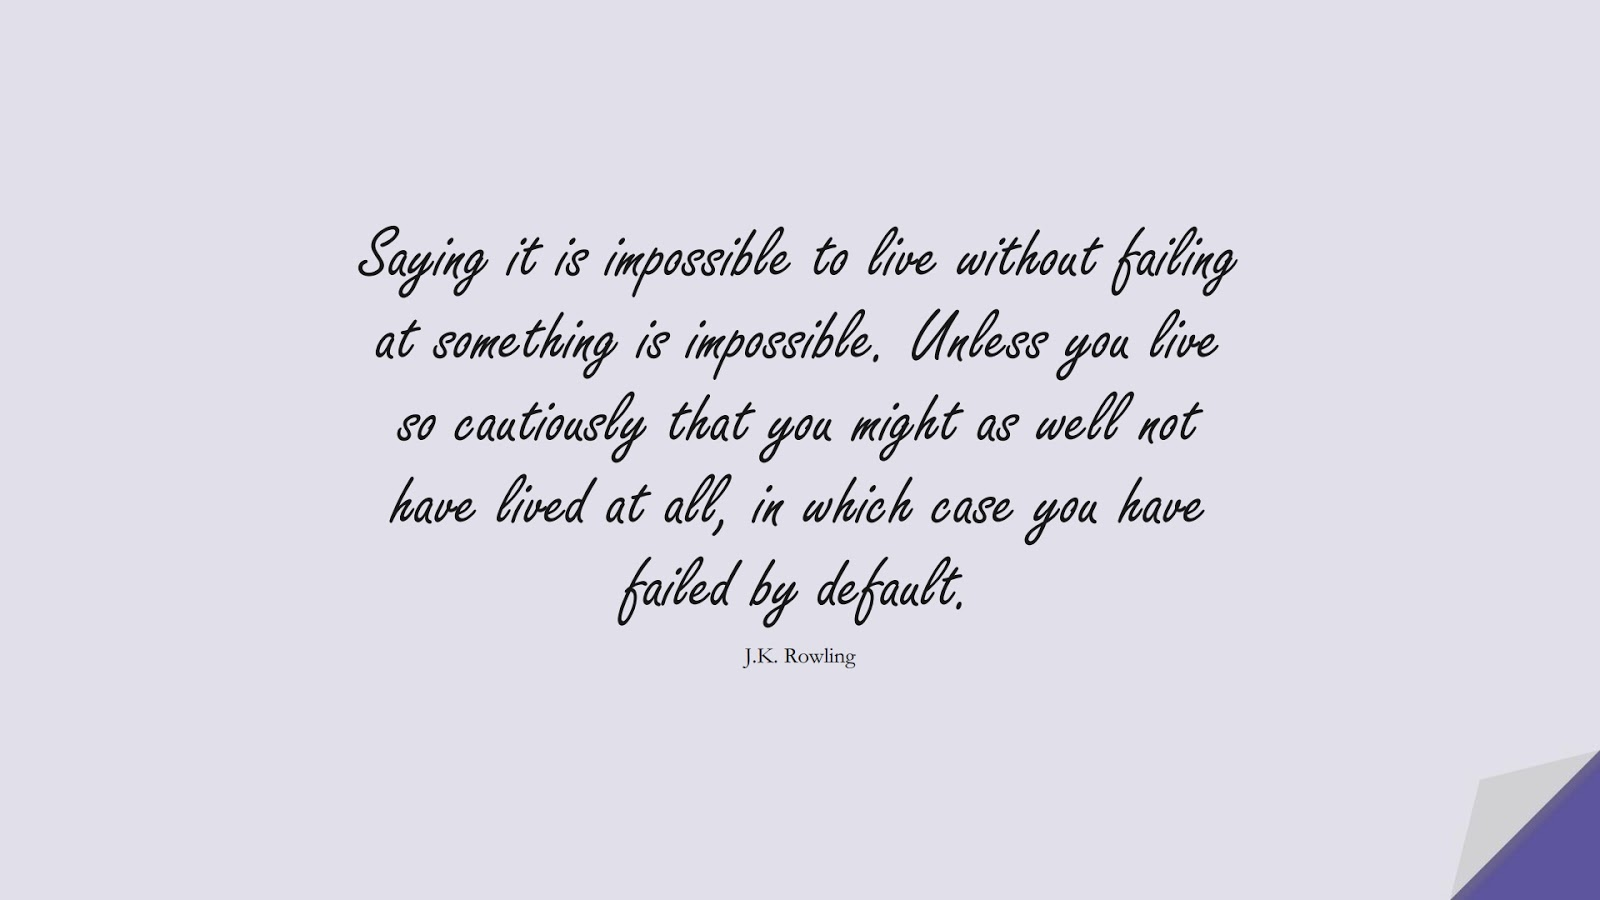 Saying it is impossible to live without failing at something is impossible. Unless you live so cautiously that you might as well not have lived at all, in which case you have failed by default. (J.K. Rowling);  #SuccessQuotes